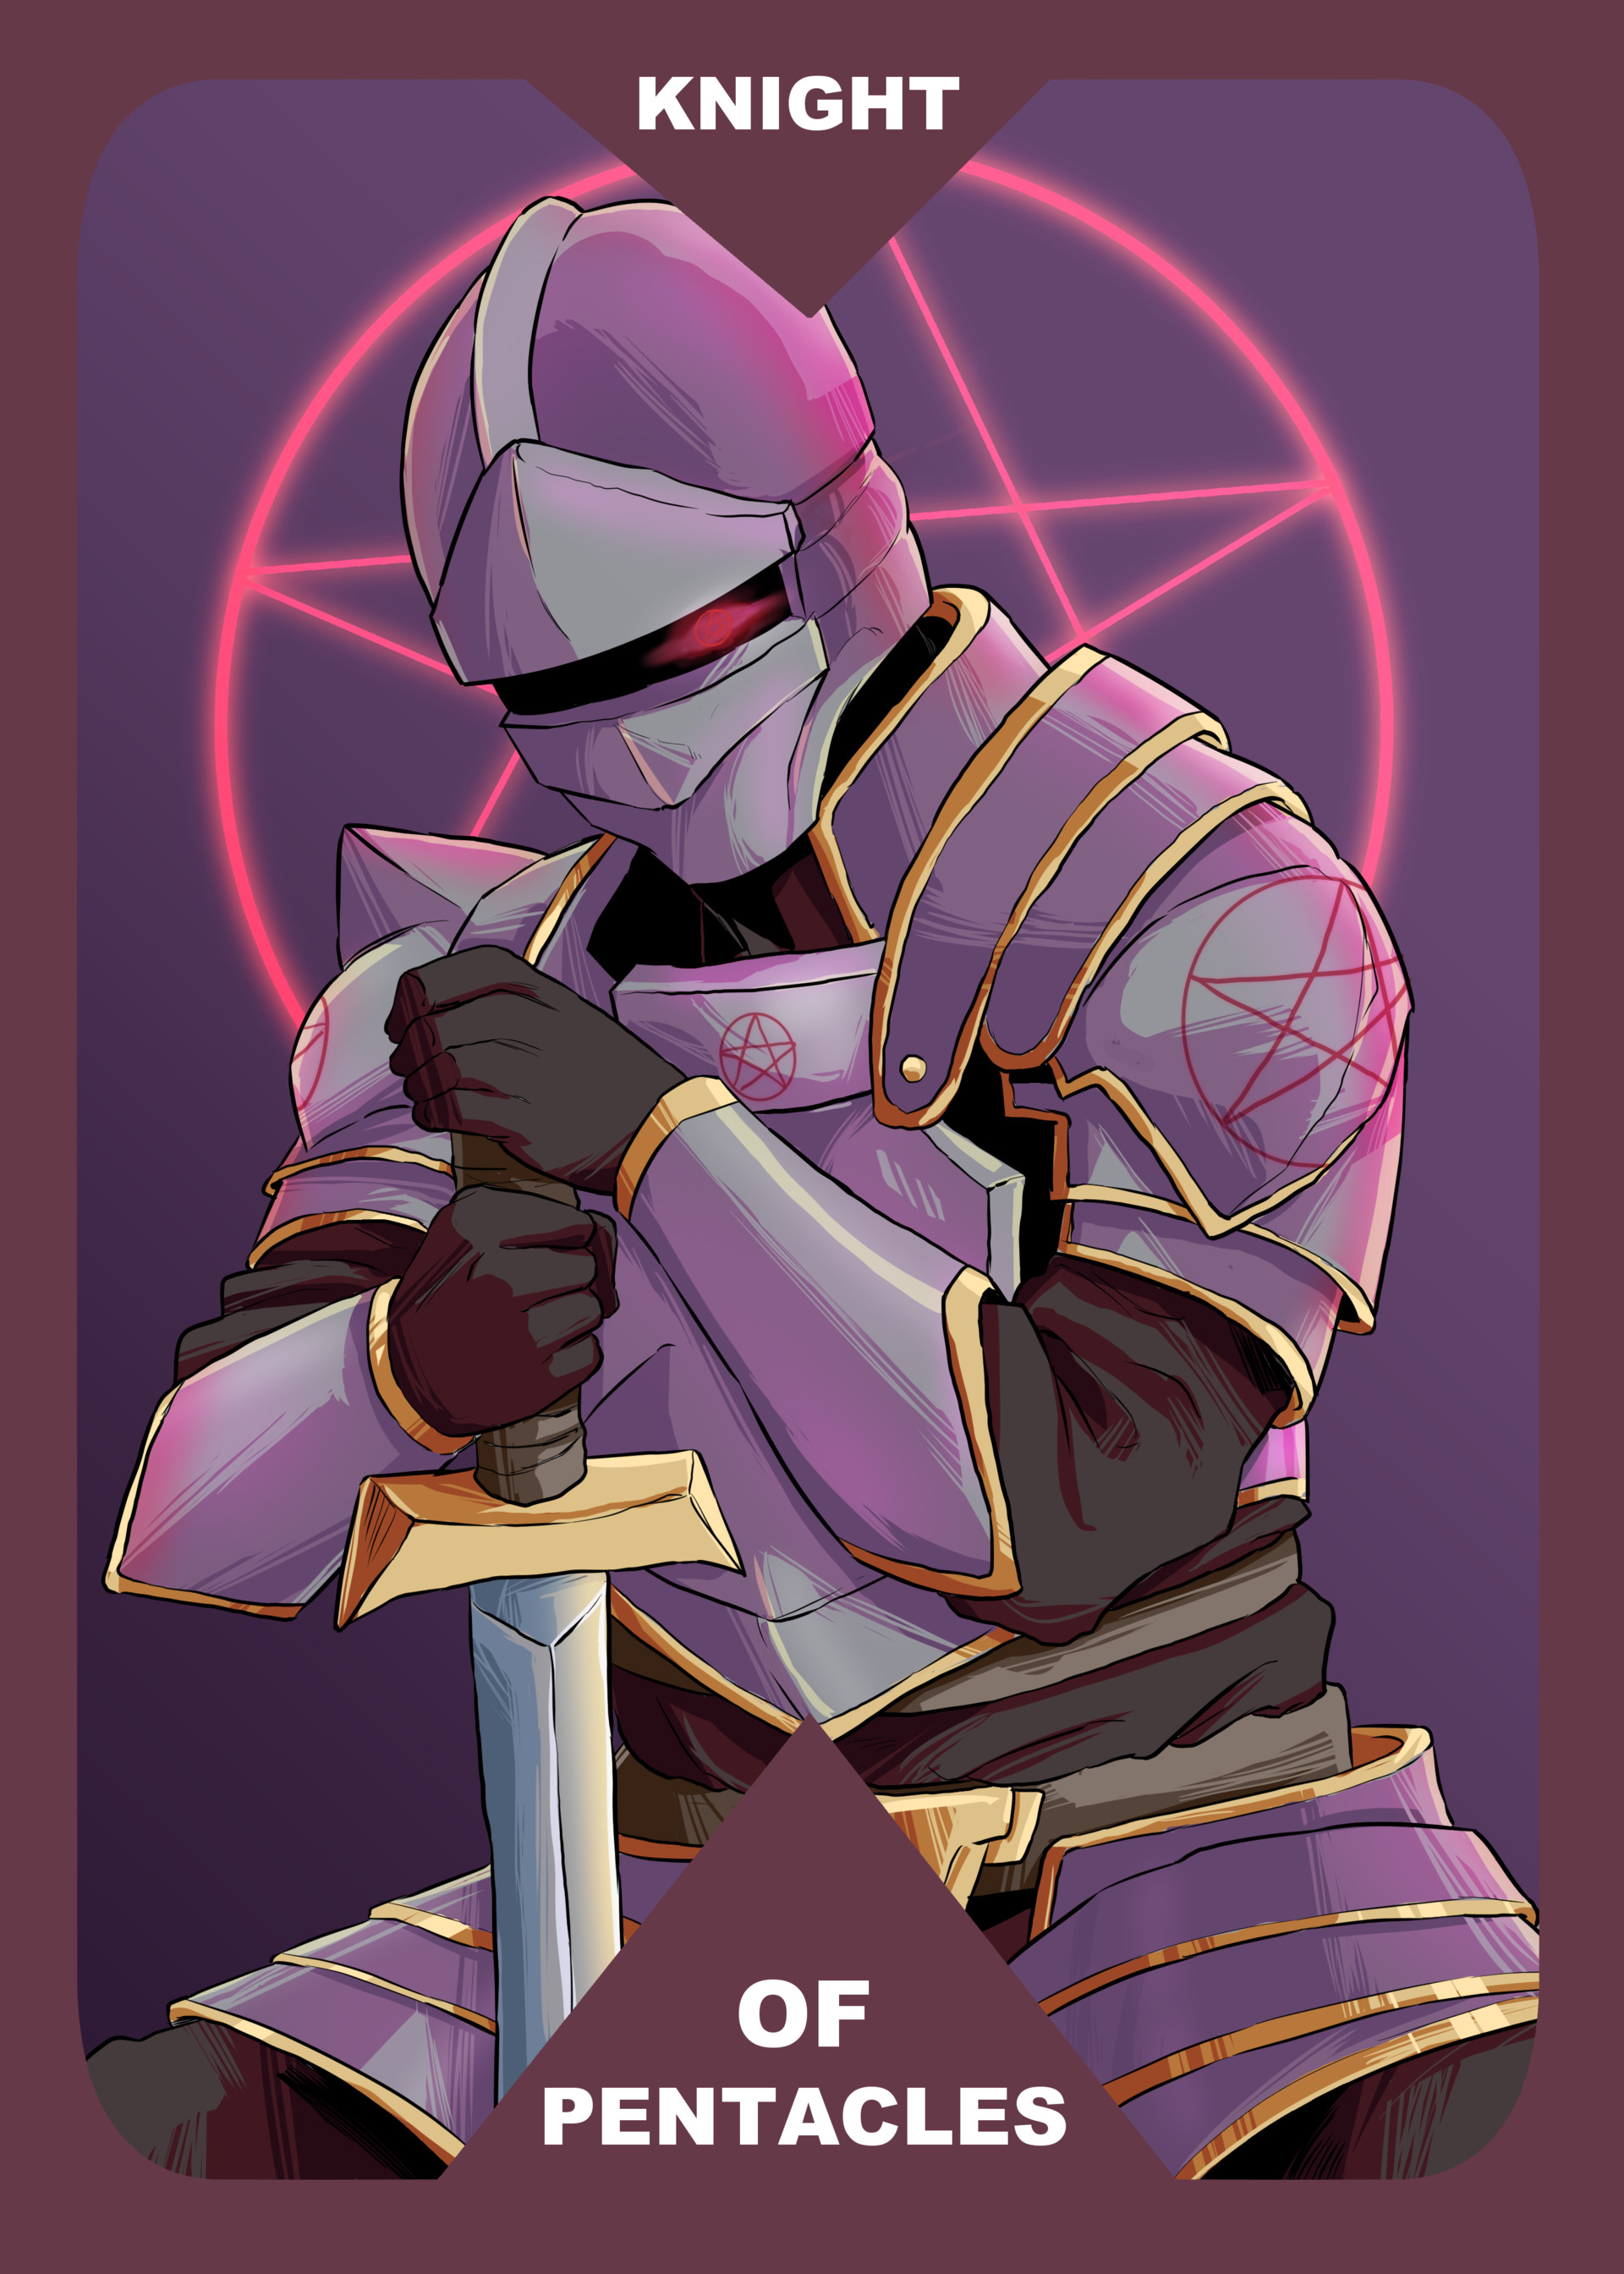 ArtStation - Tarot Cards: Knight of Pentacles and The